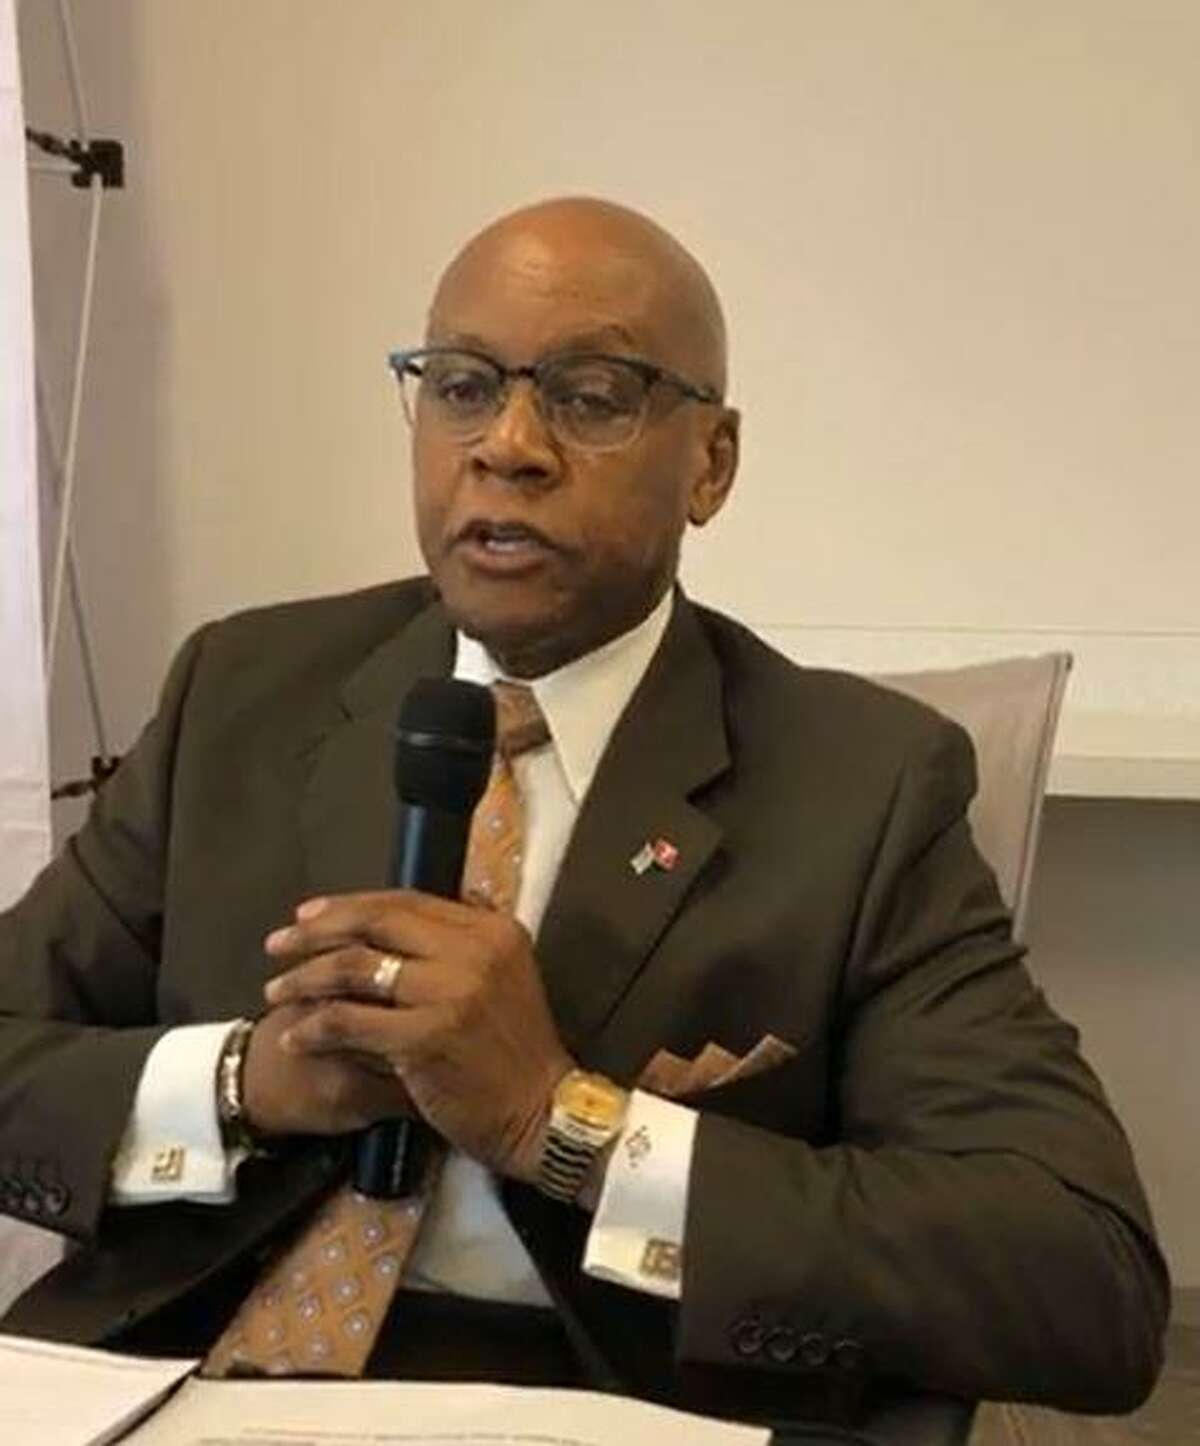 Candidates for the township Board of Directors participated in an online forum on Tuesday, Sept. 29, at The Woodlands Area Chamber of Commerce. Jimmie Dotson, the first Black candidate in the history of The Woodlands is seeking the Position 2 seat.